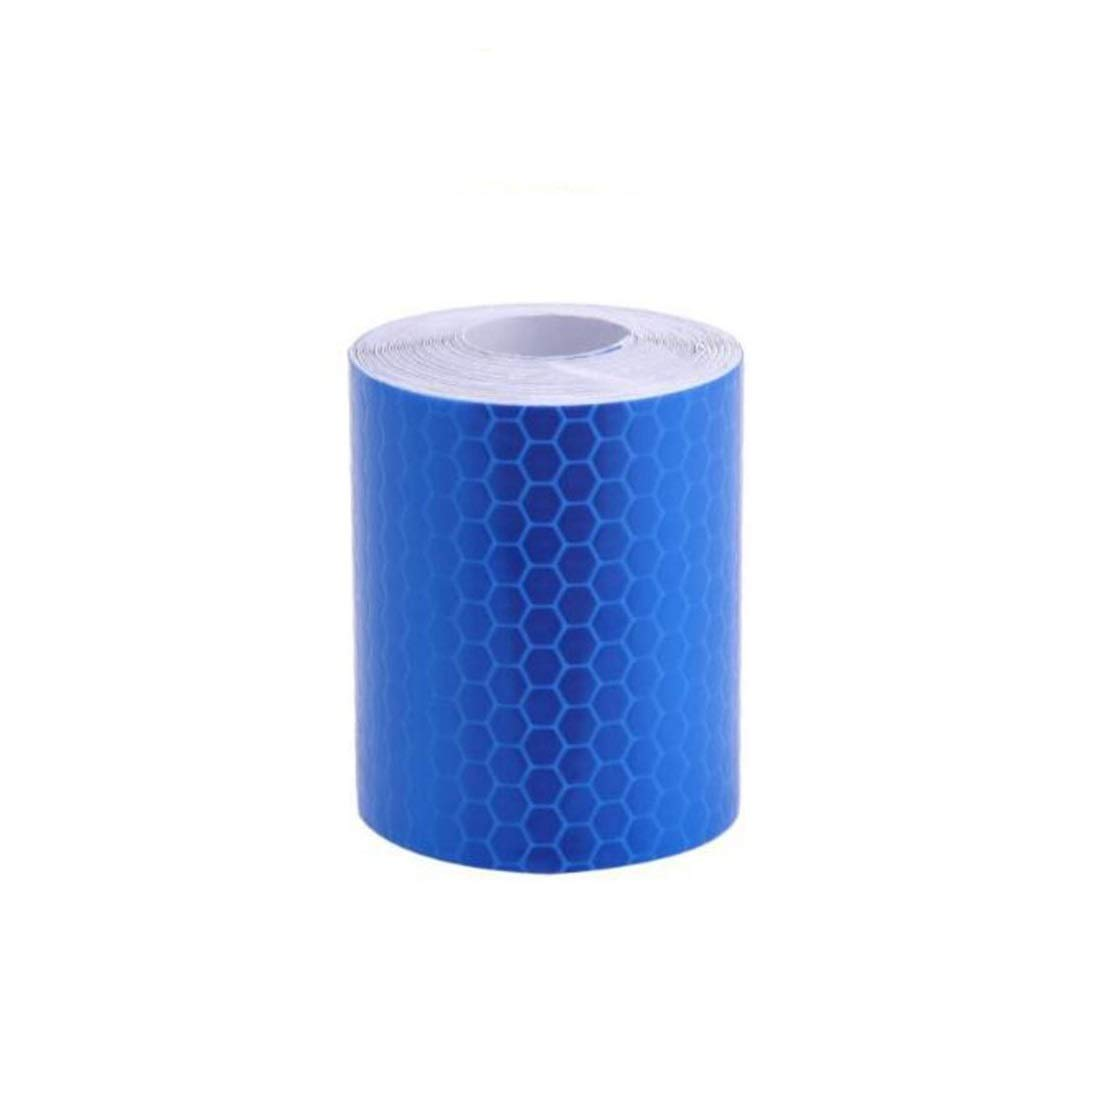 SYGA 3 Meter Reflective Warning Tape Sticker, High Visibility Safety Honeycomb Conspicuity Tapes(Blue) product image